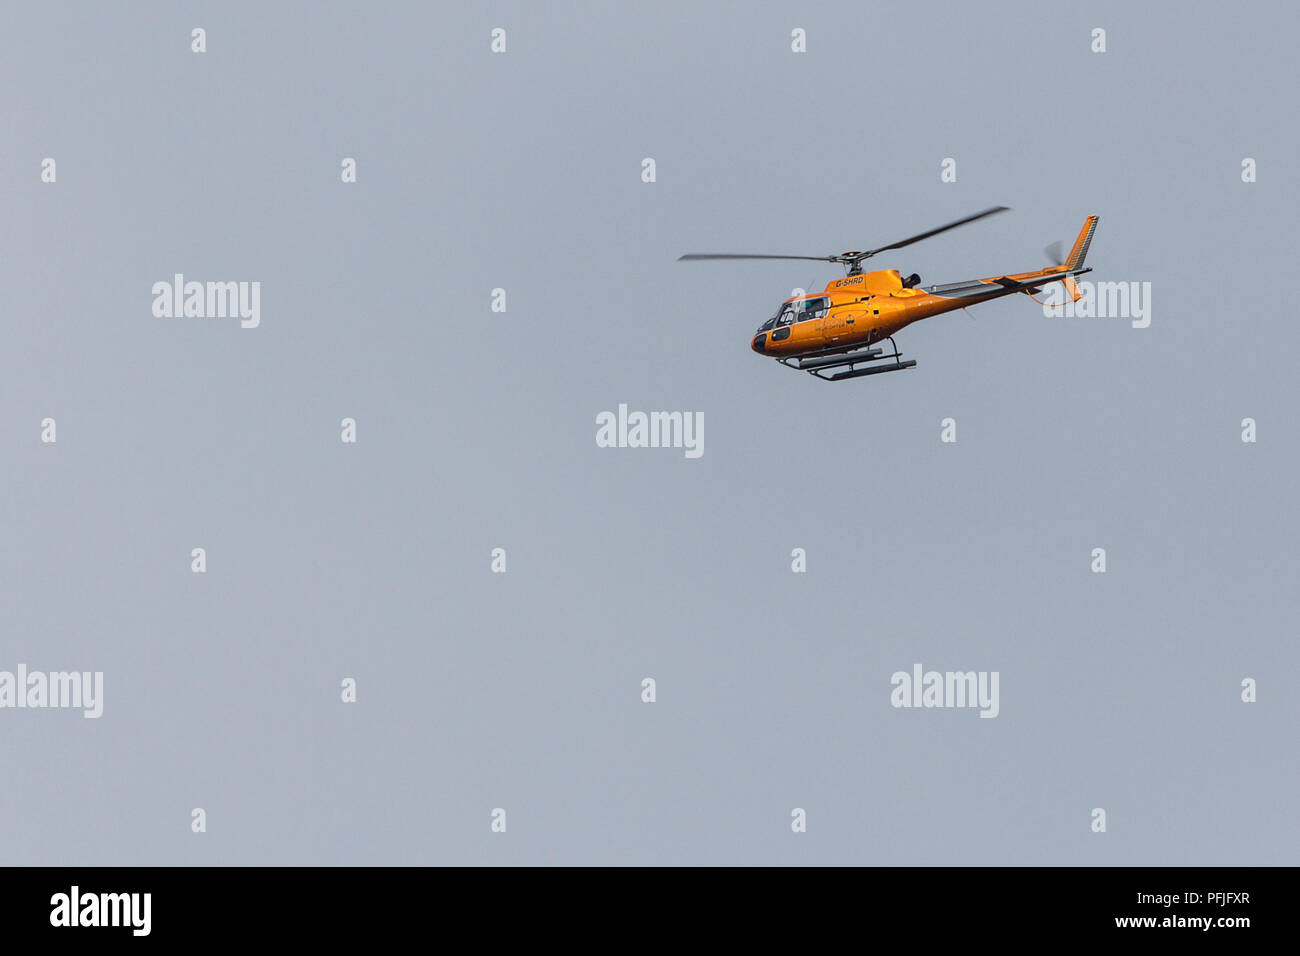 Helicopter flying over shoreham by sea coastal area. Image taken with 150-600 sigma lens while photographing waders. Vertical lift off and hovering. - Stock Image